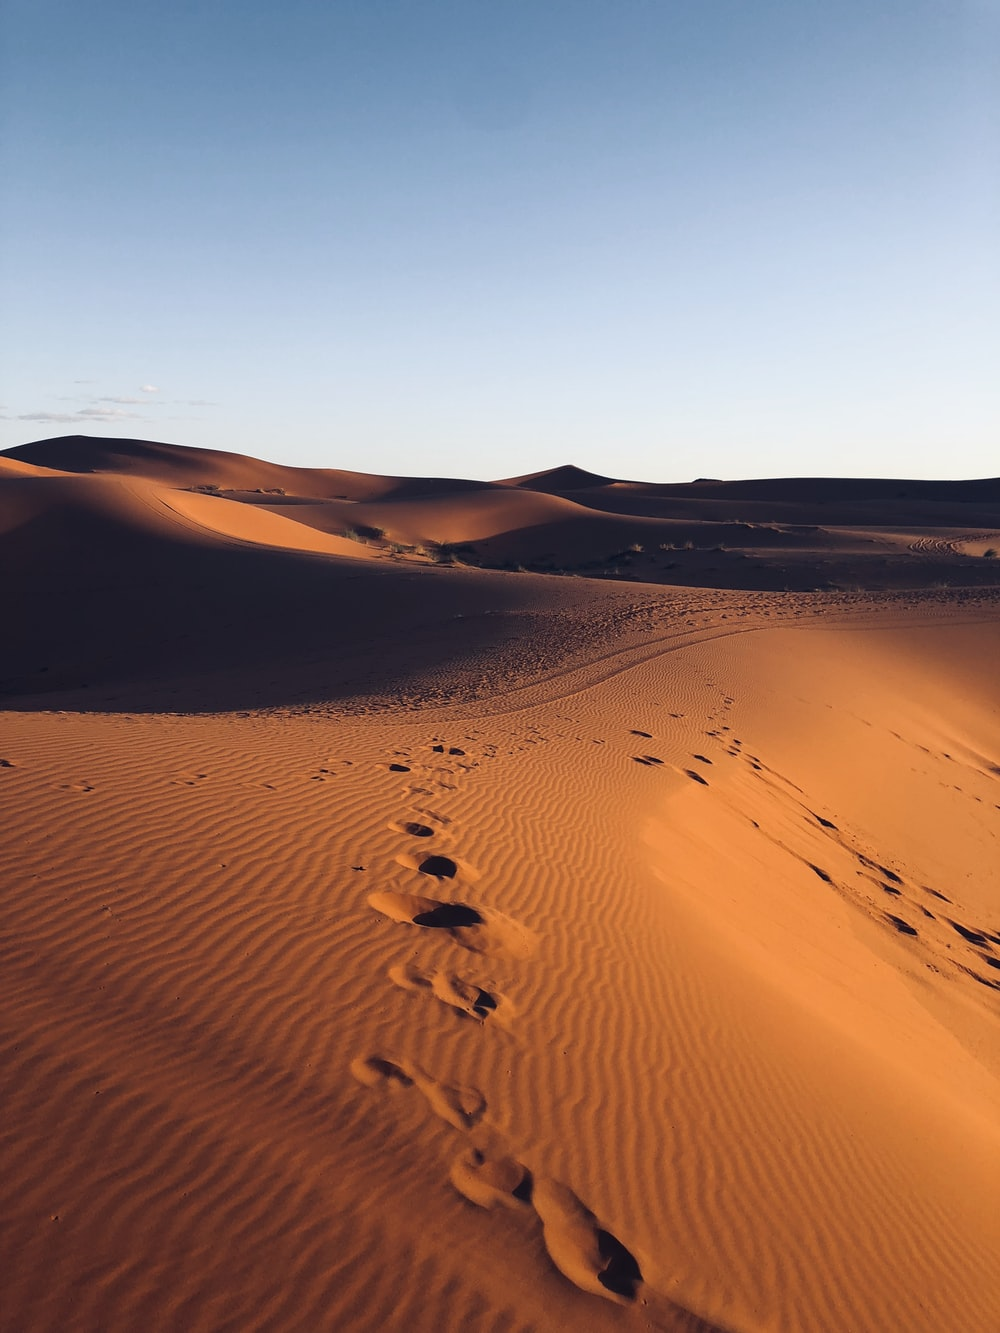 footsteps in sand of desert